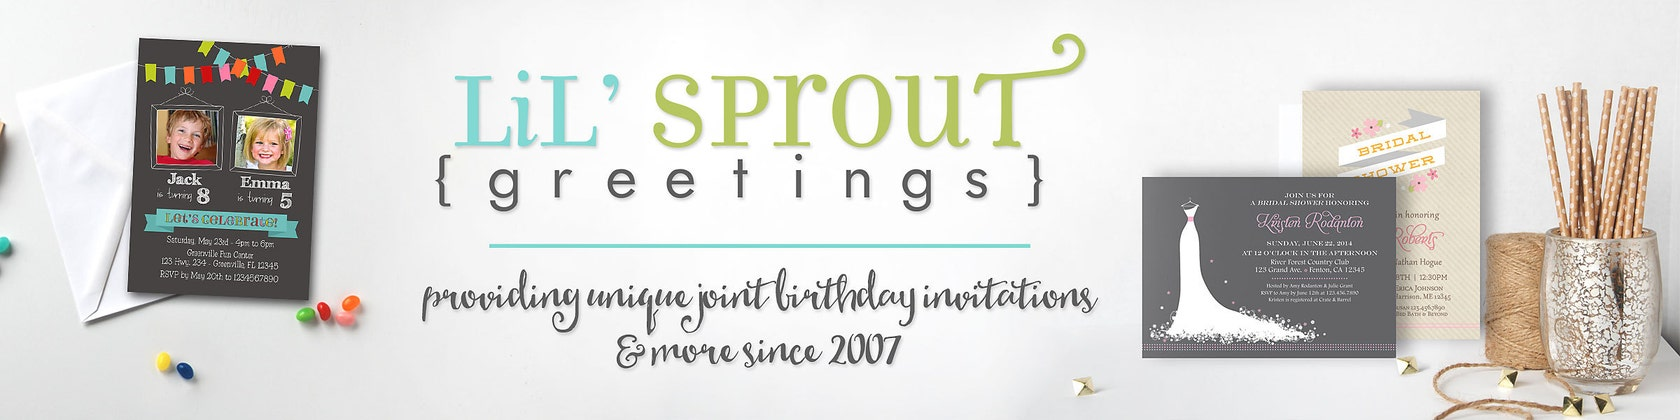 Printable joint birthday and shower by lilsproutgreetings on etsy lilsproutgreetings m4hsunfo